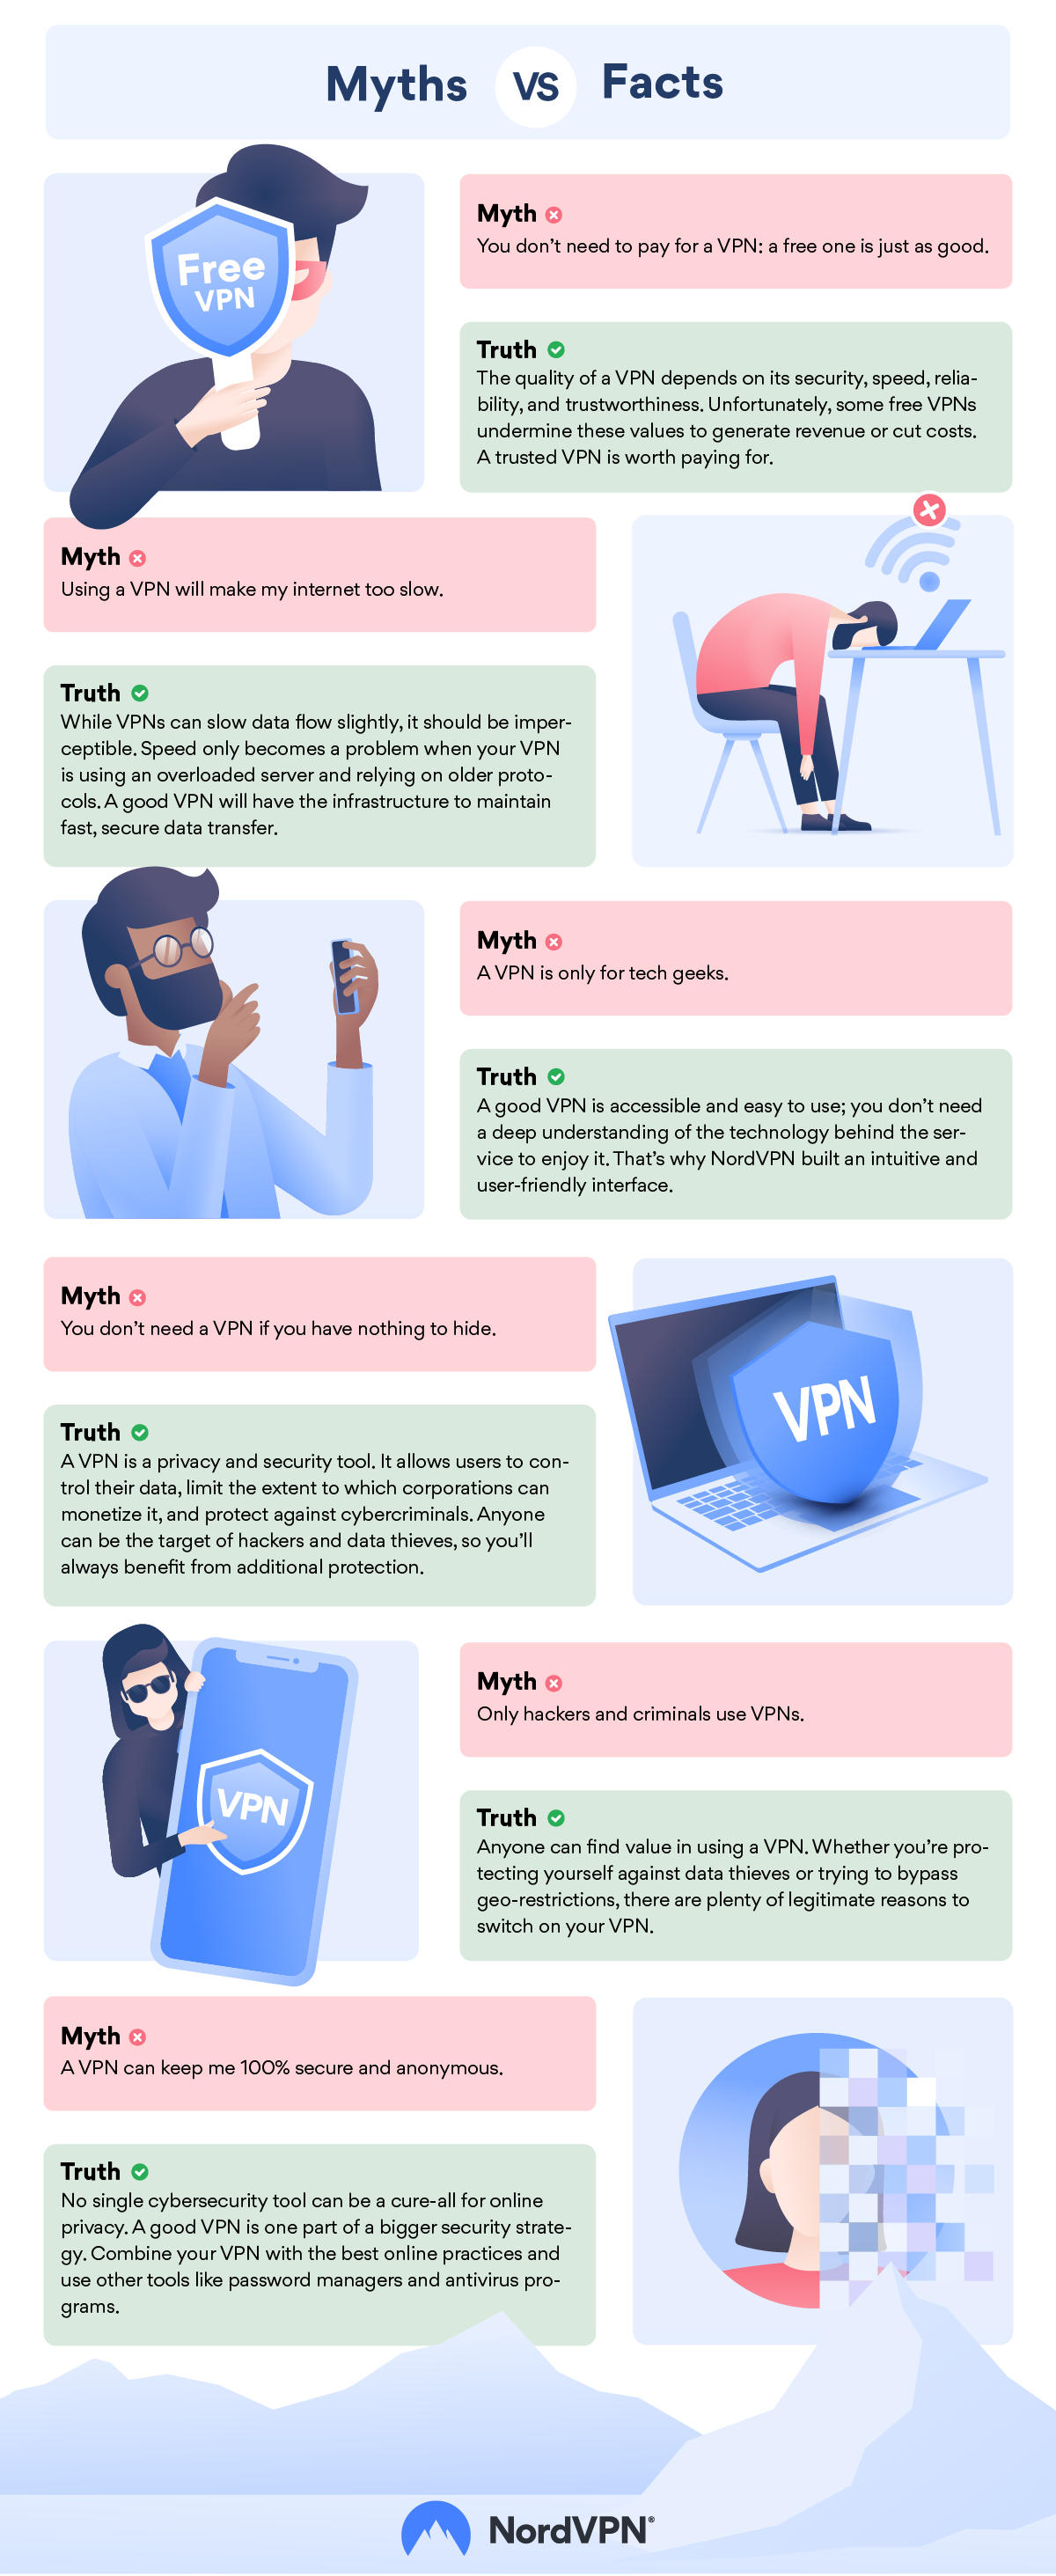 VPN facts vs myths